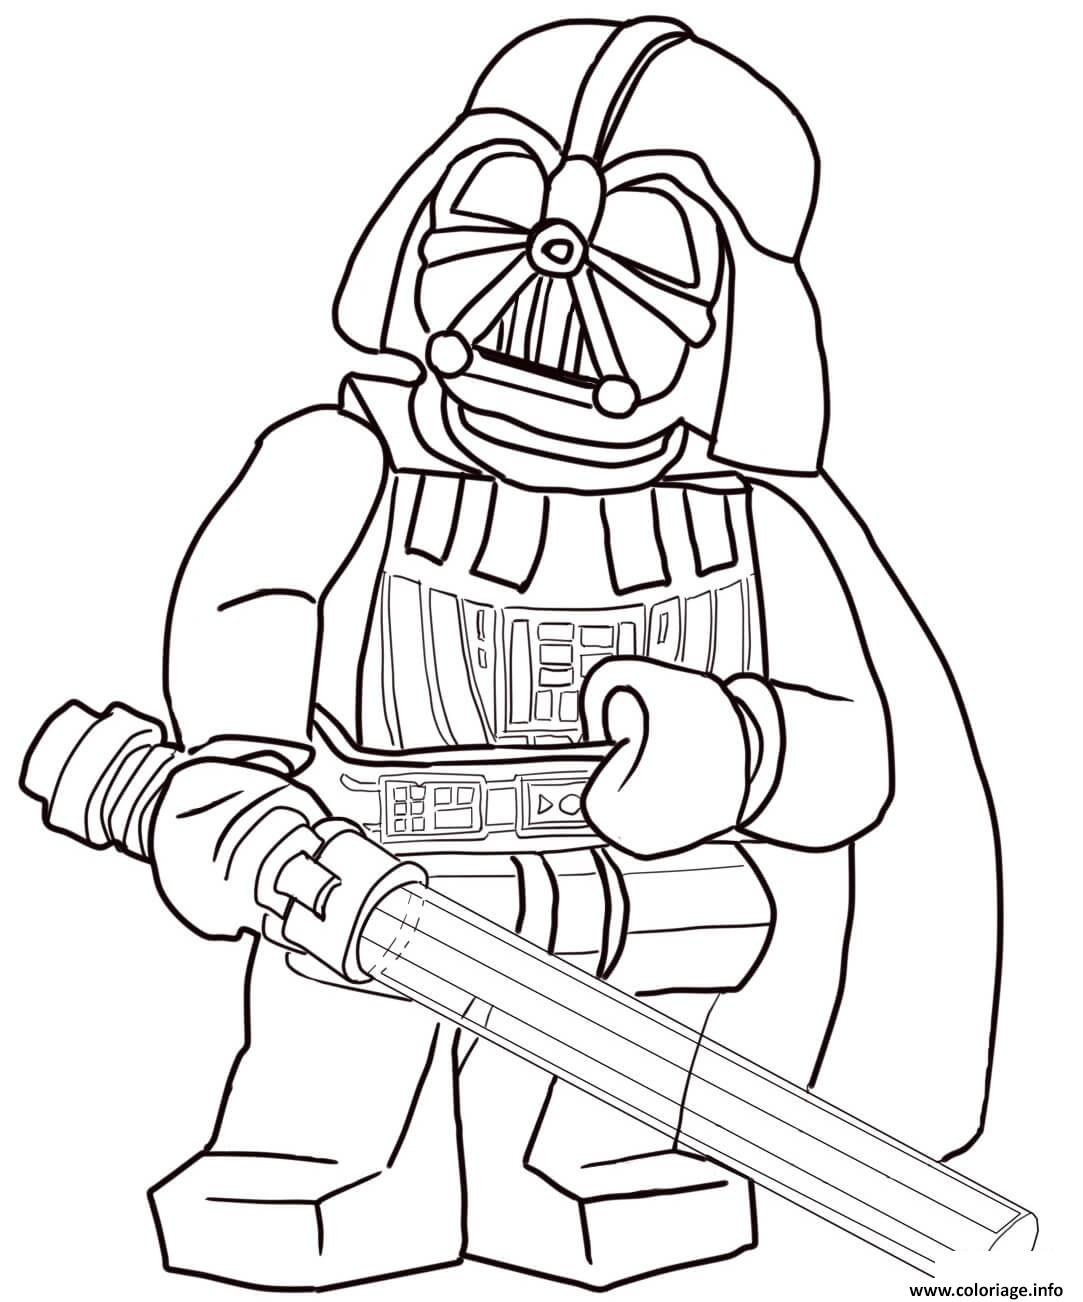 Coloriage lego star wars 3 movie - Dessin lego a colorier ...